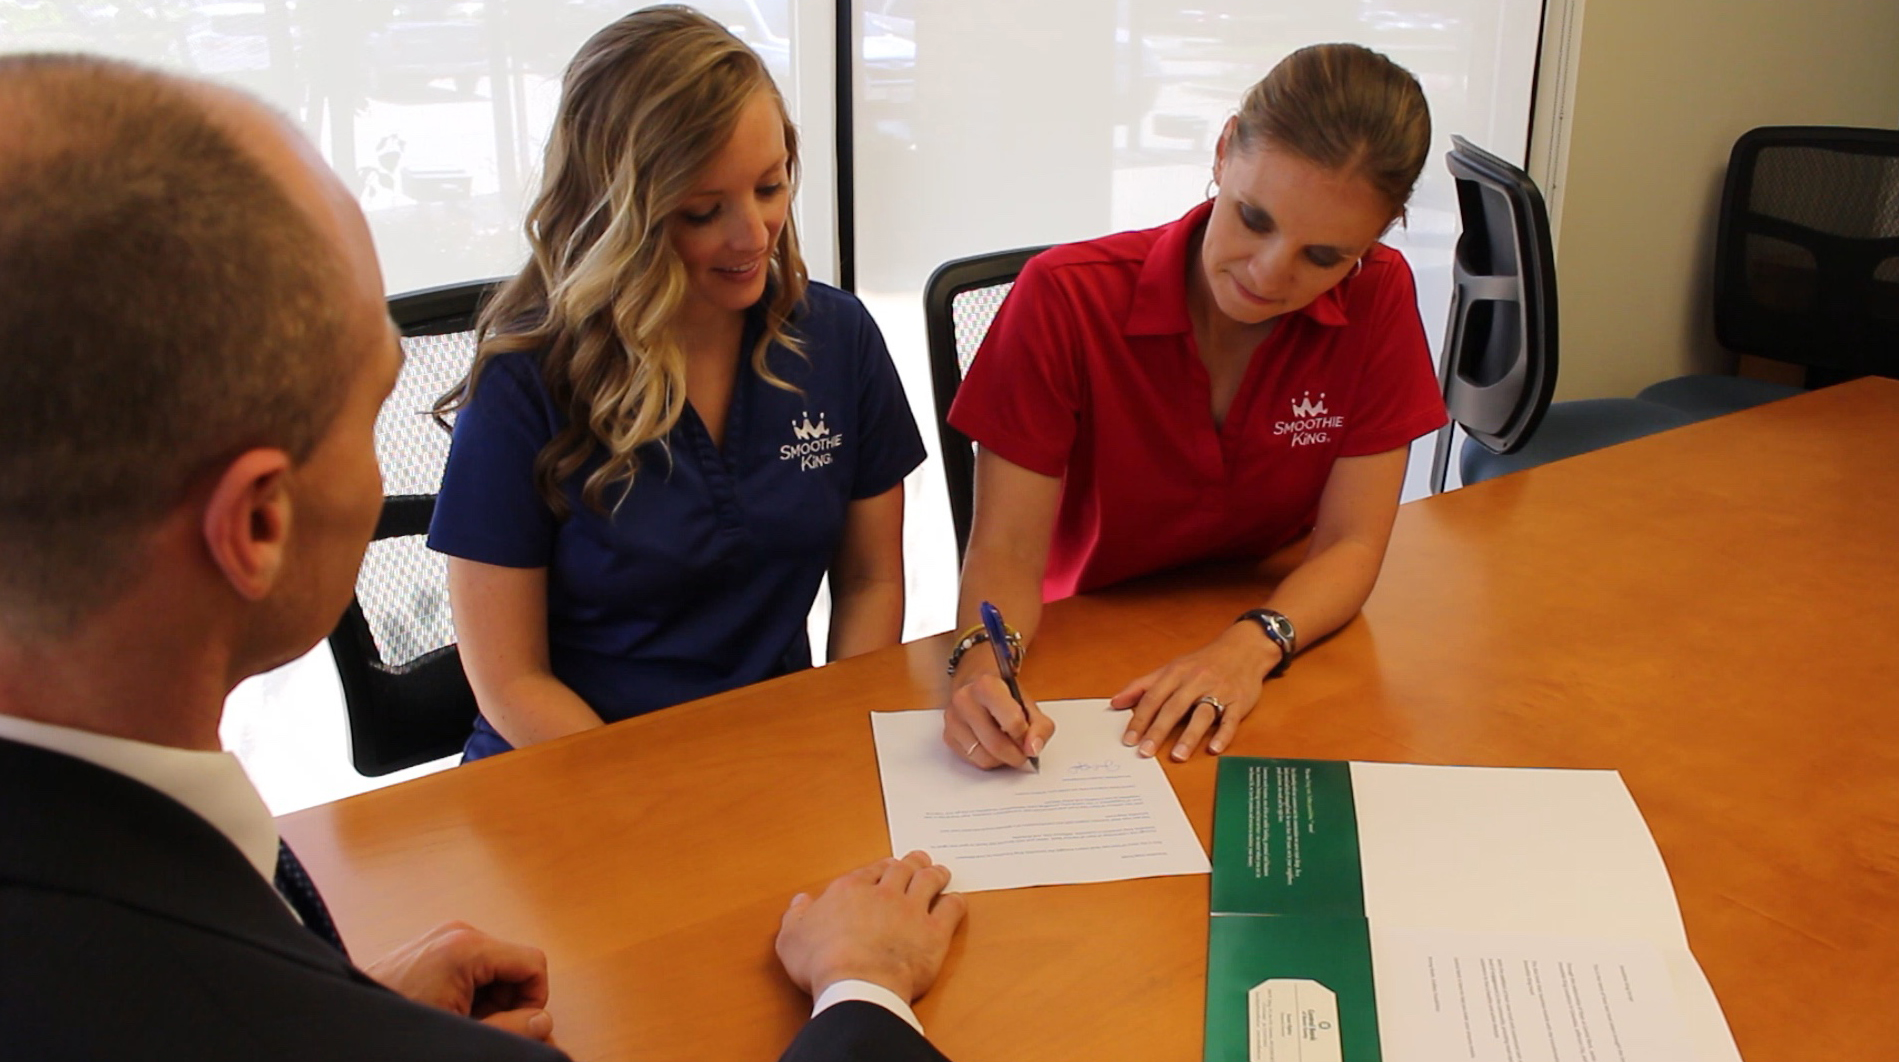 Jackie and Kelli signing paperwork for their Smoothie King locations